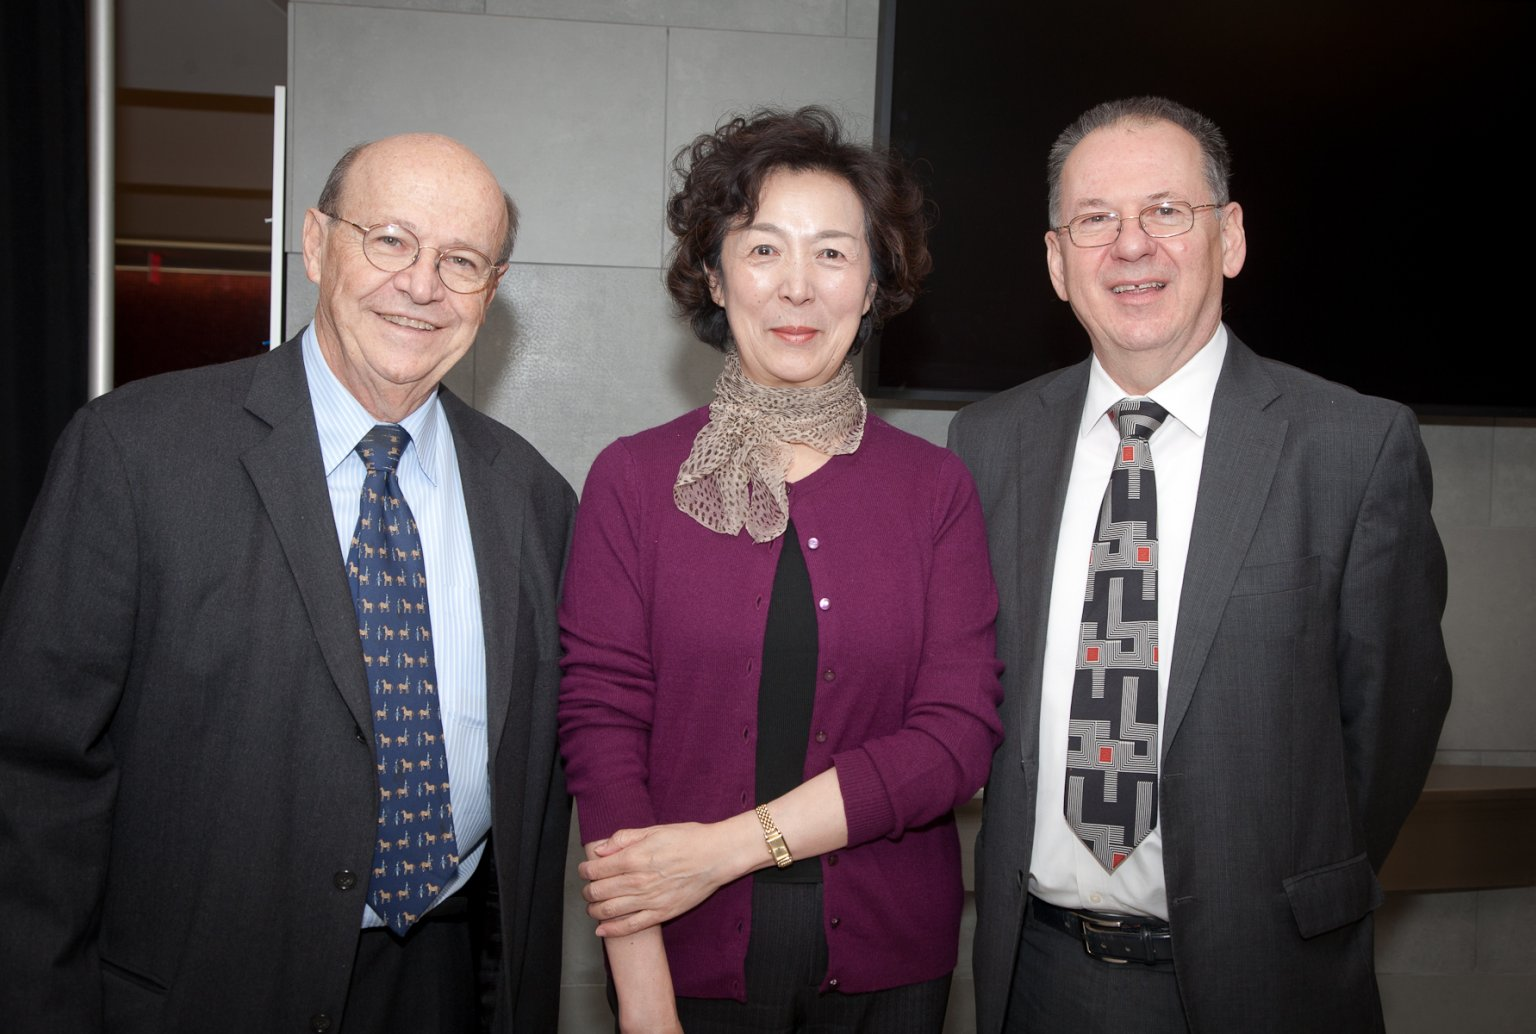 2d6ba19358583 Professor Vasarhelyi is reappointed and celebrated as KPMG s distinguished  professor of accounting